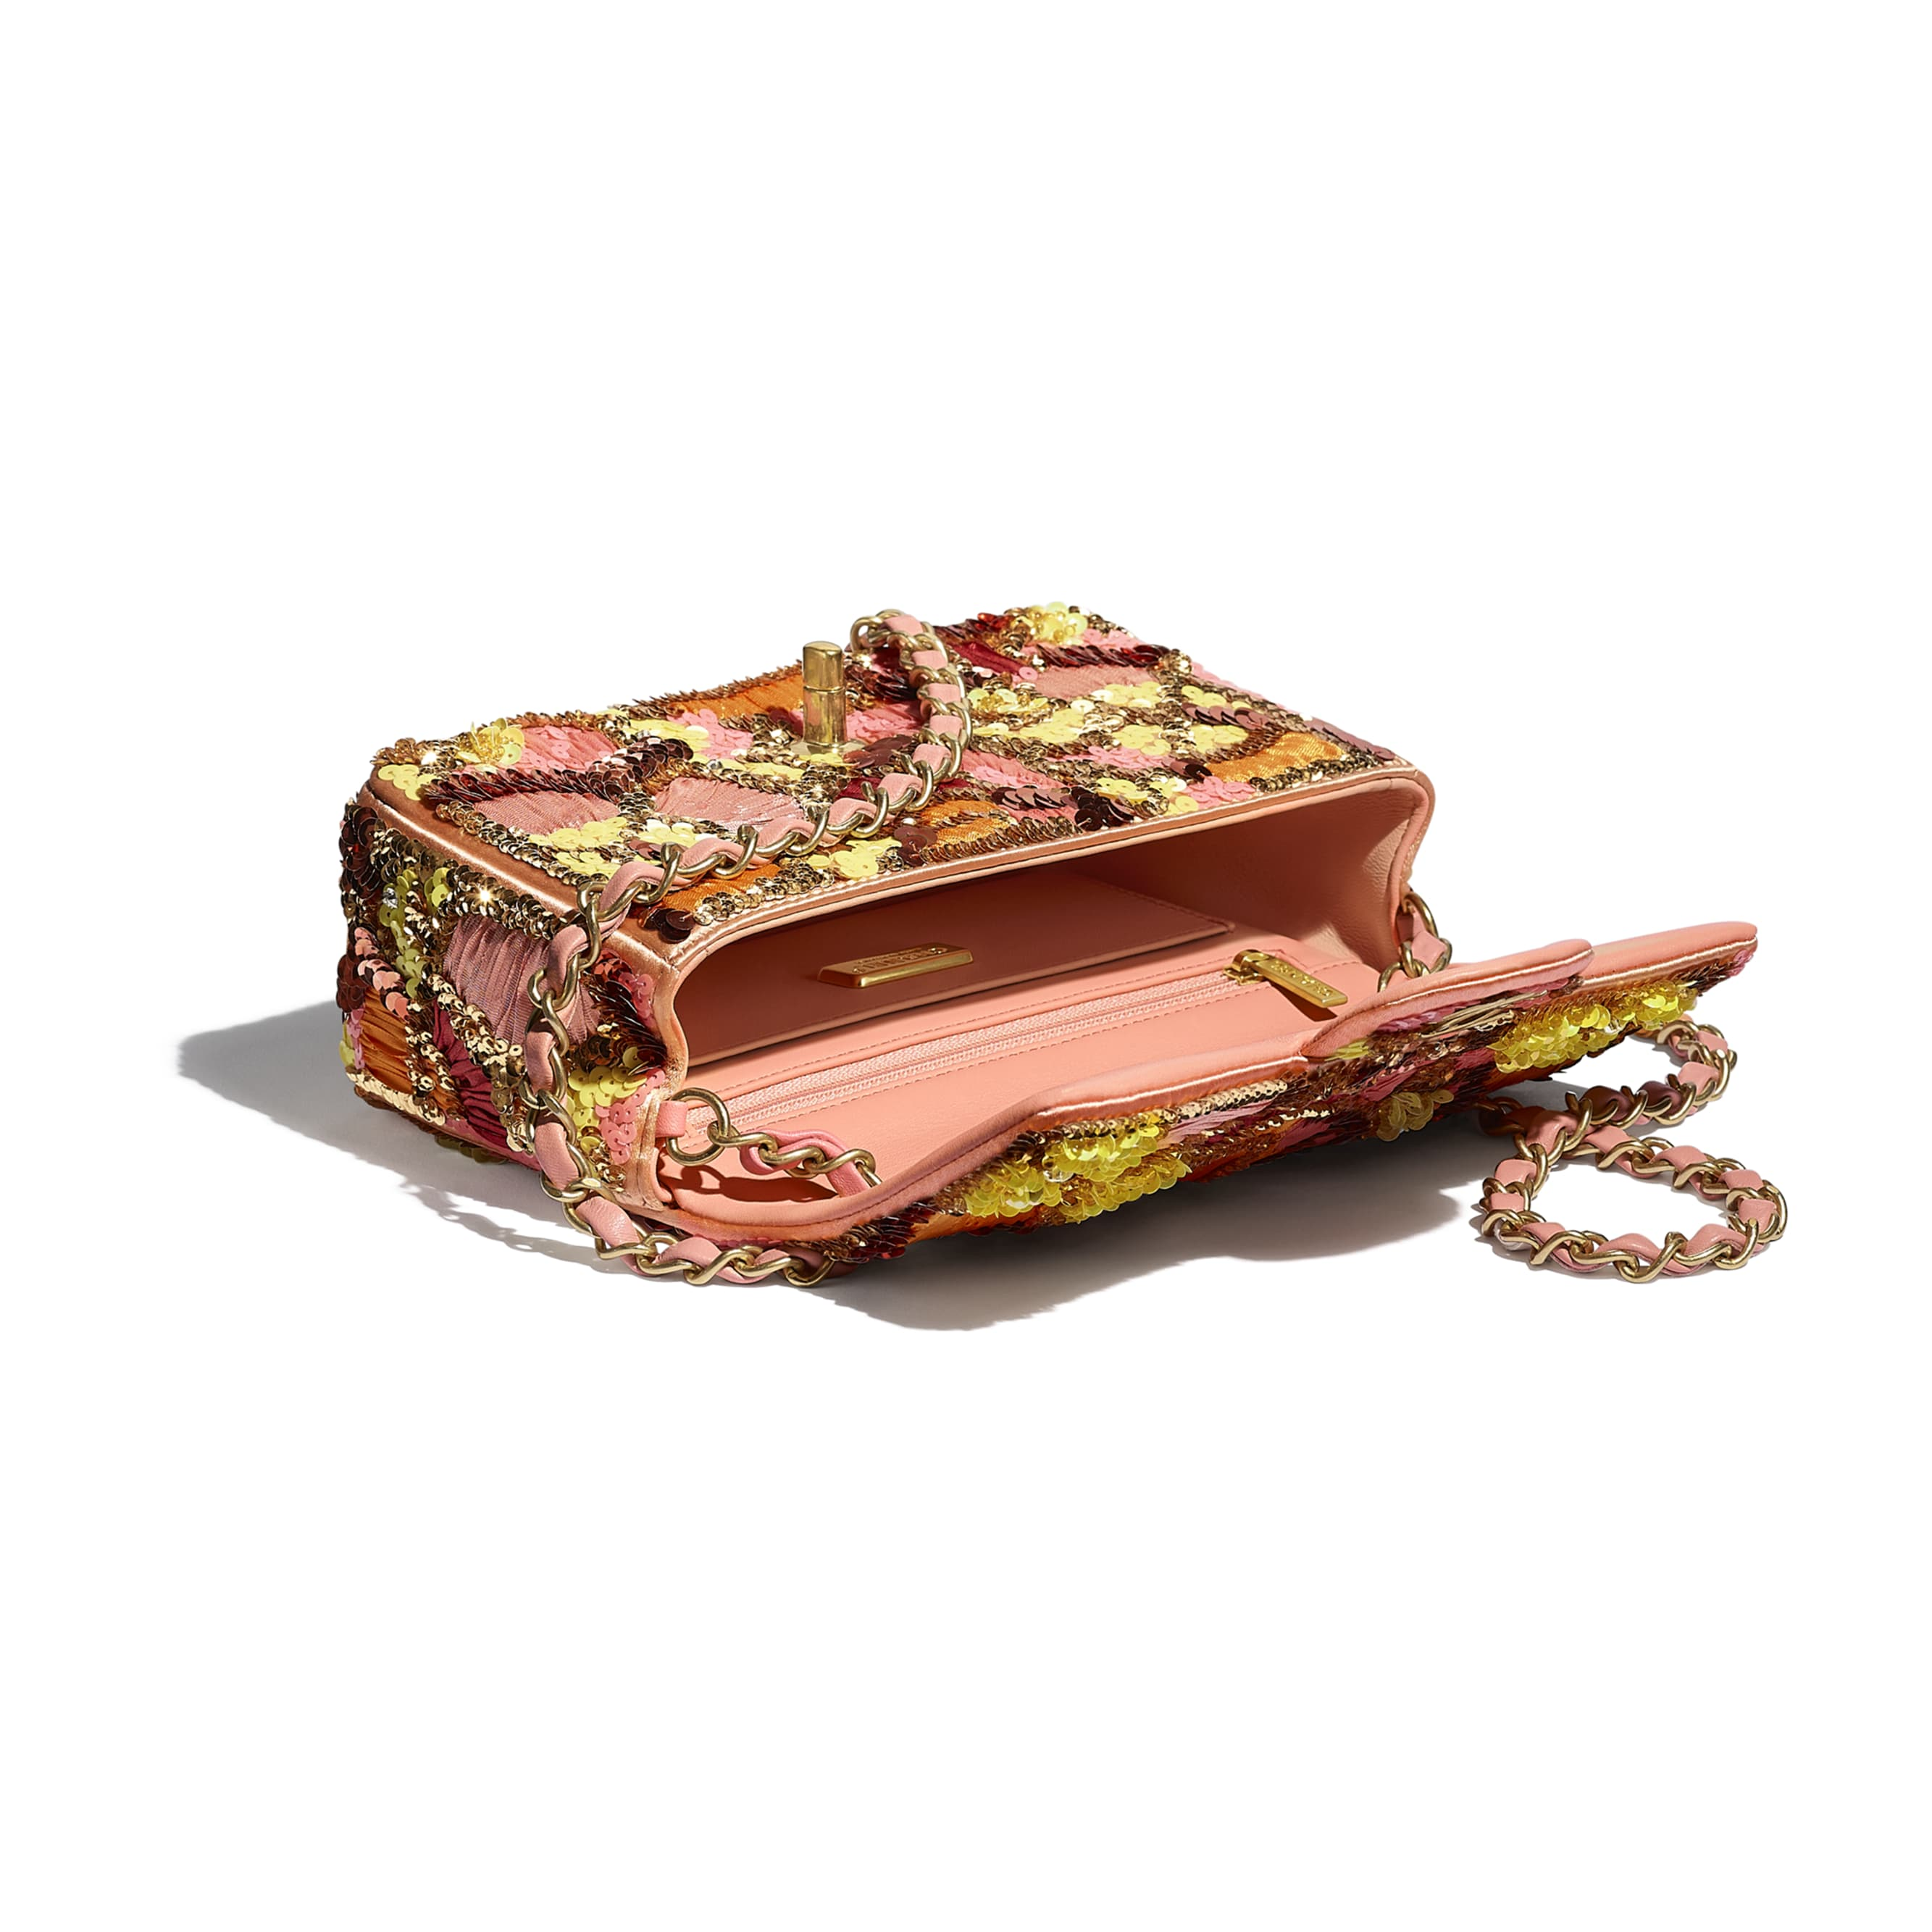 Mini Flap Bag - Pink, White, Yellow & Orange - Sequins, Mixed Fibers, Glass Pearls, Lambskin & Gold-Tone Metal - CHANEL - Other view - see standard sized version